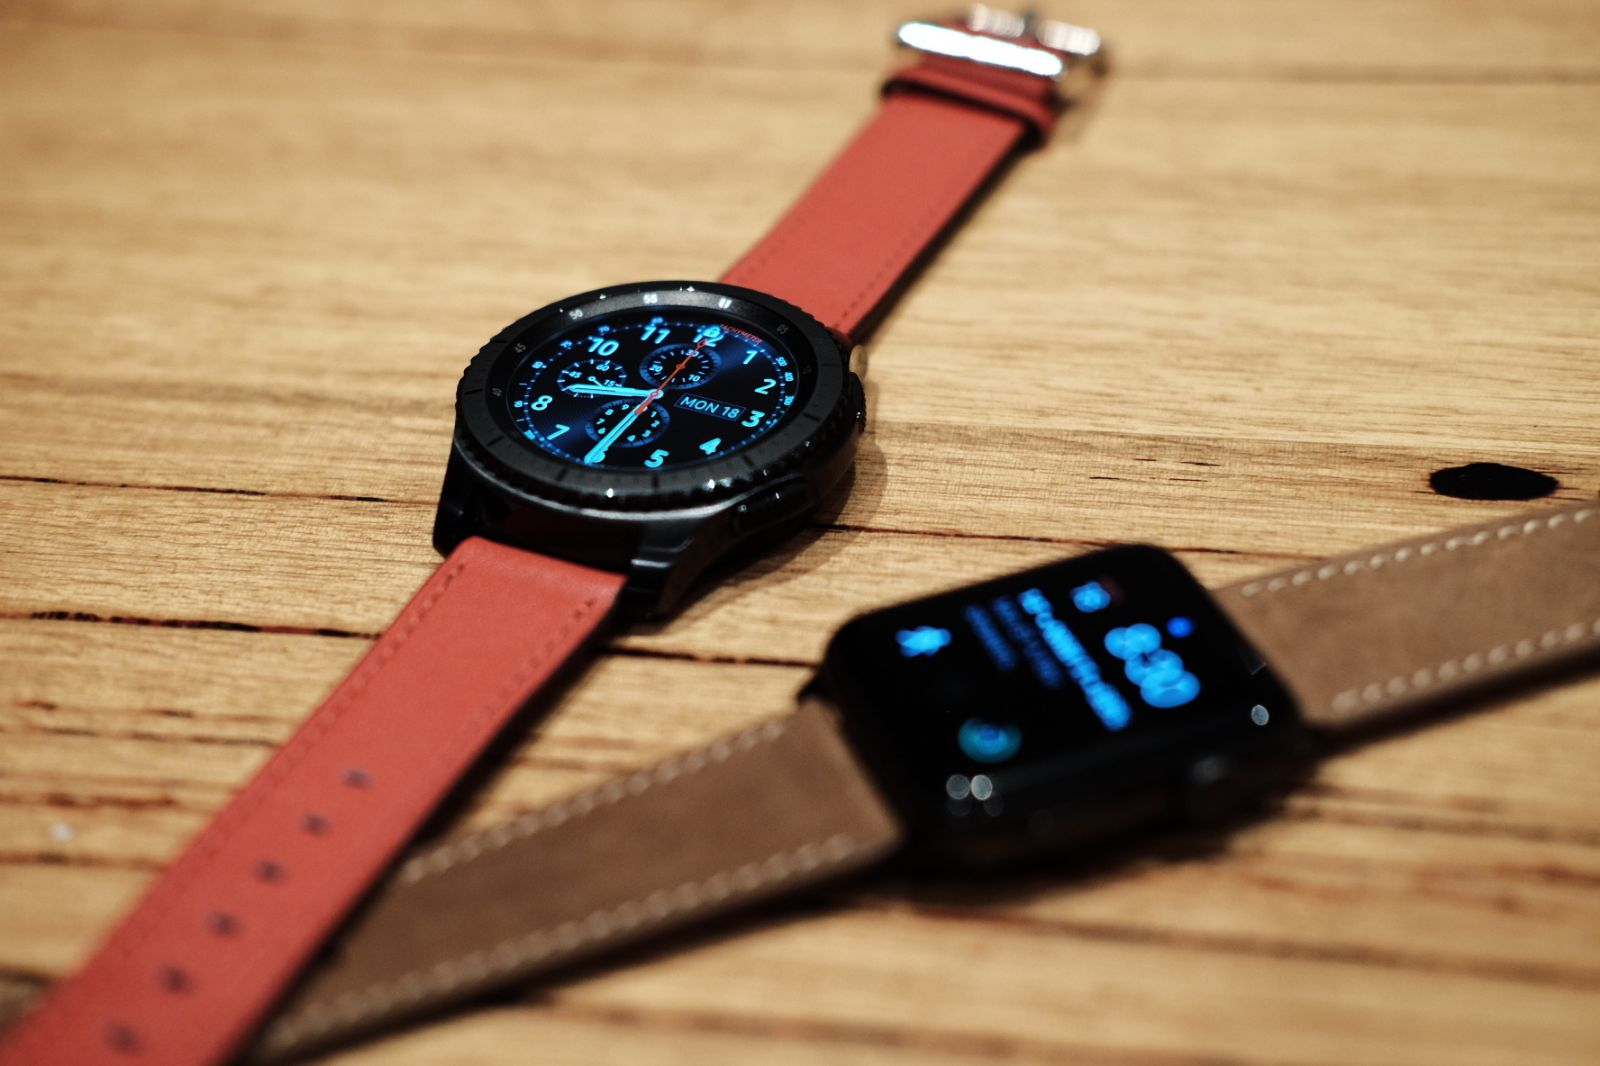 Samsung Gear S3 vs Apple Watch - An Honest Review (6 Months After The Change!)